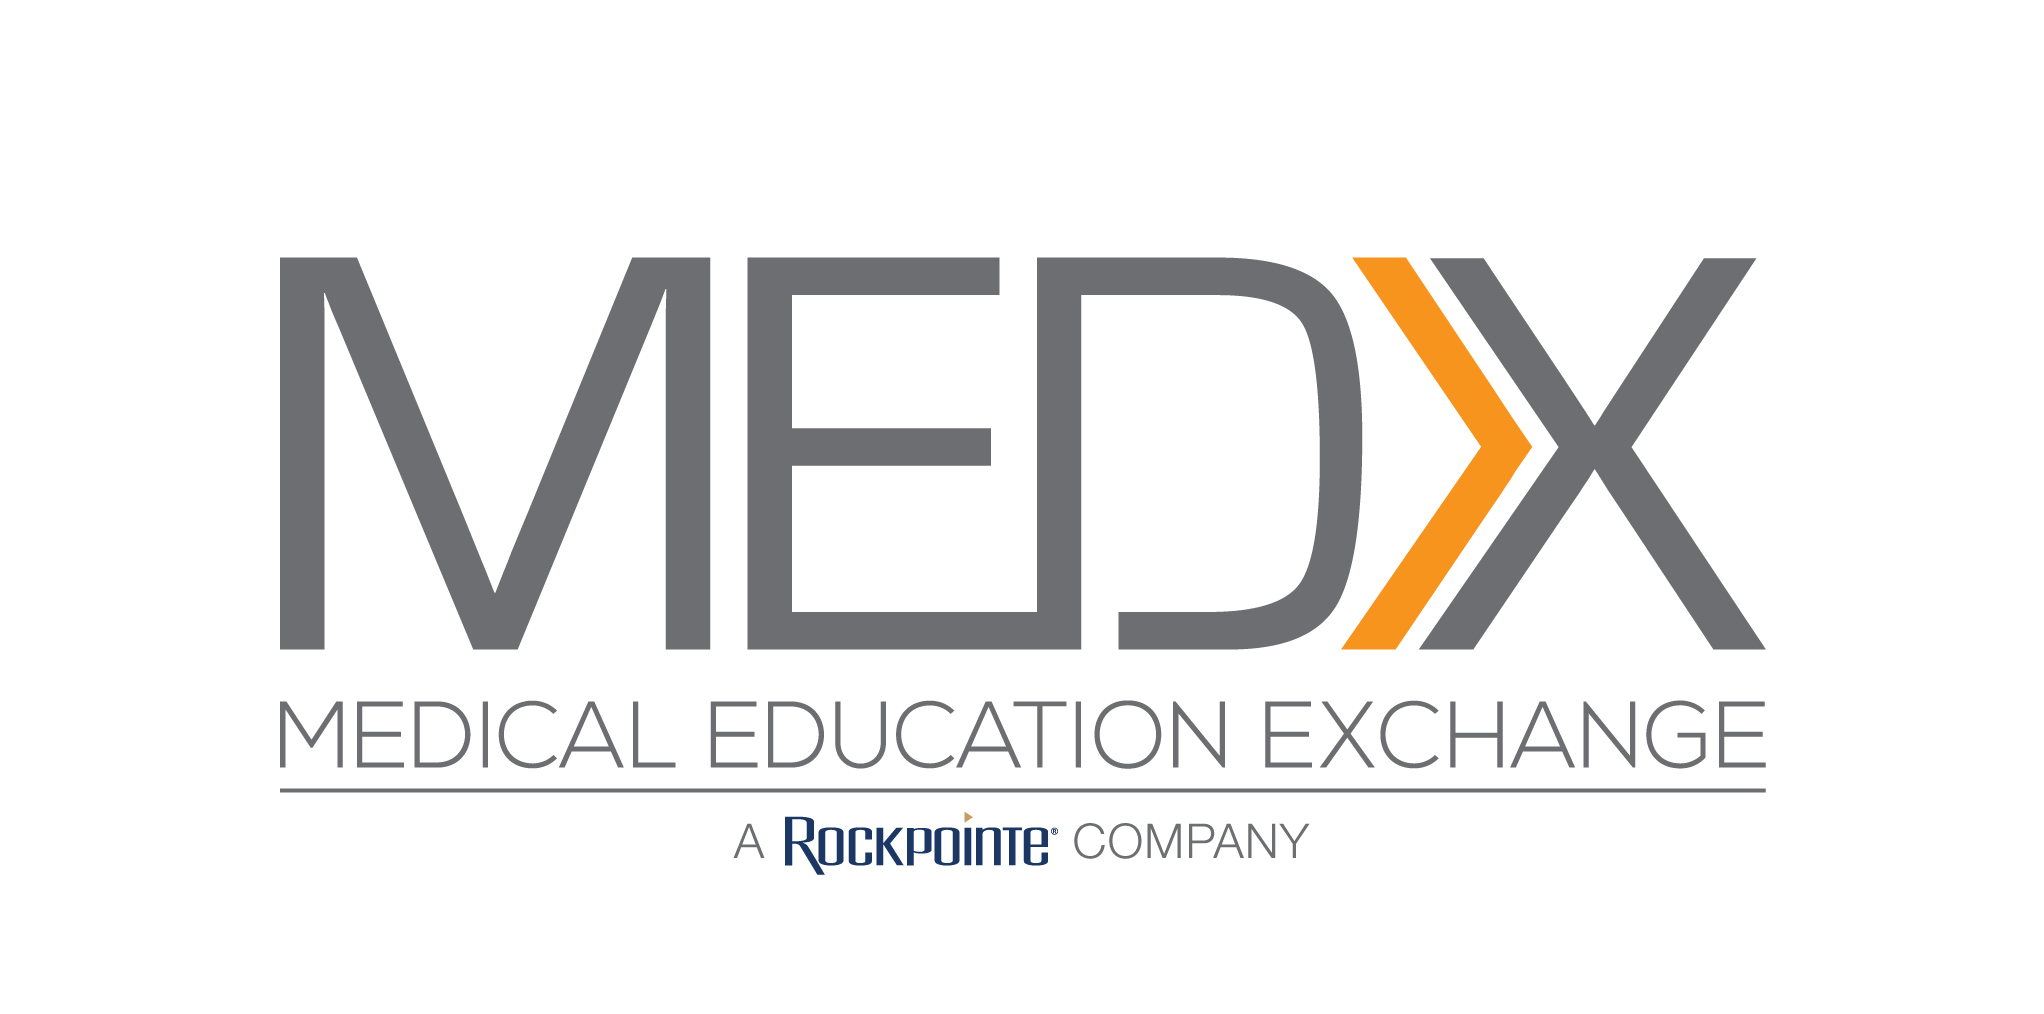 MEDX Rockpointe Primary Care 2018 Conferences feature 3